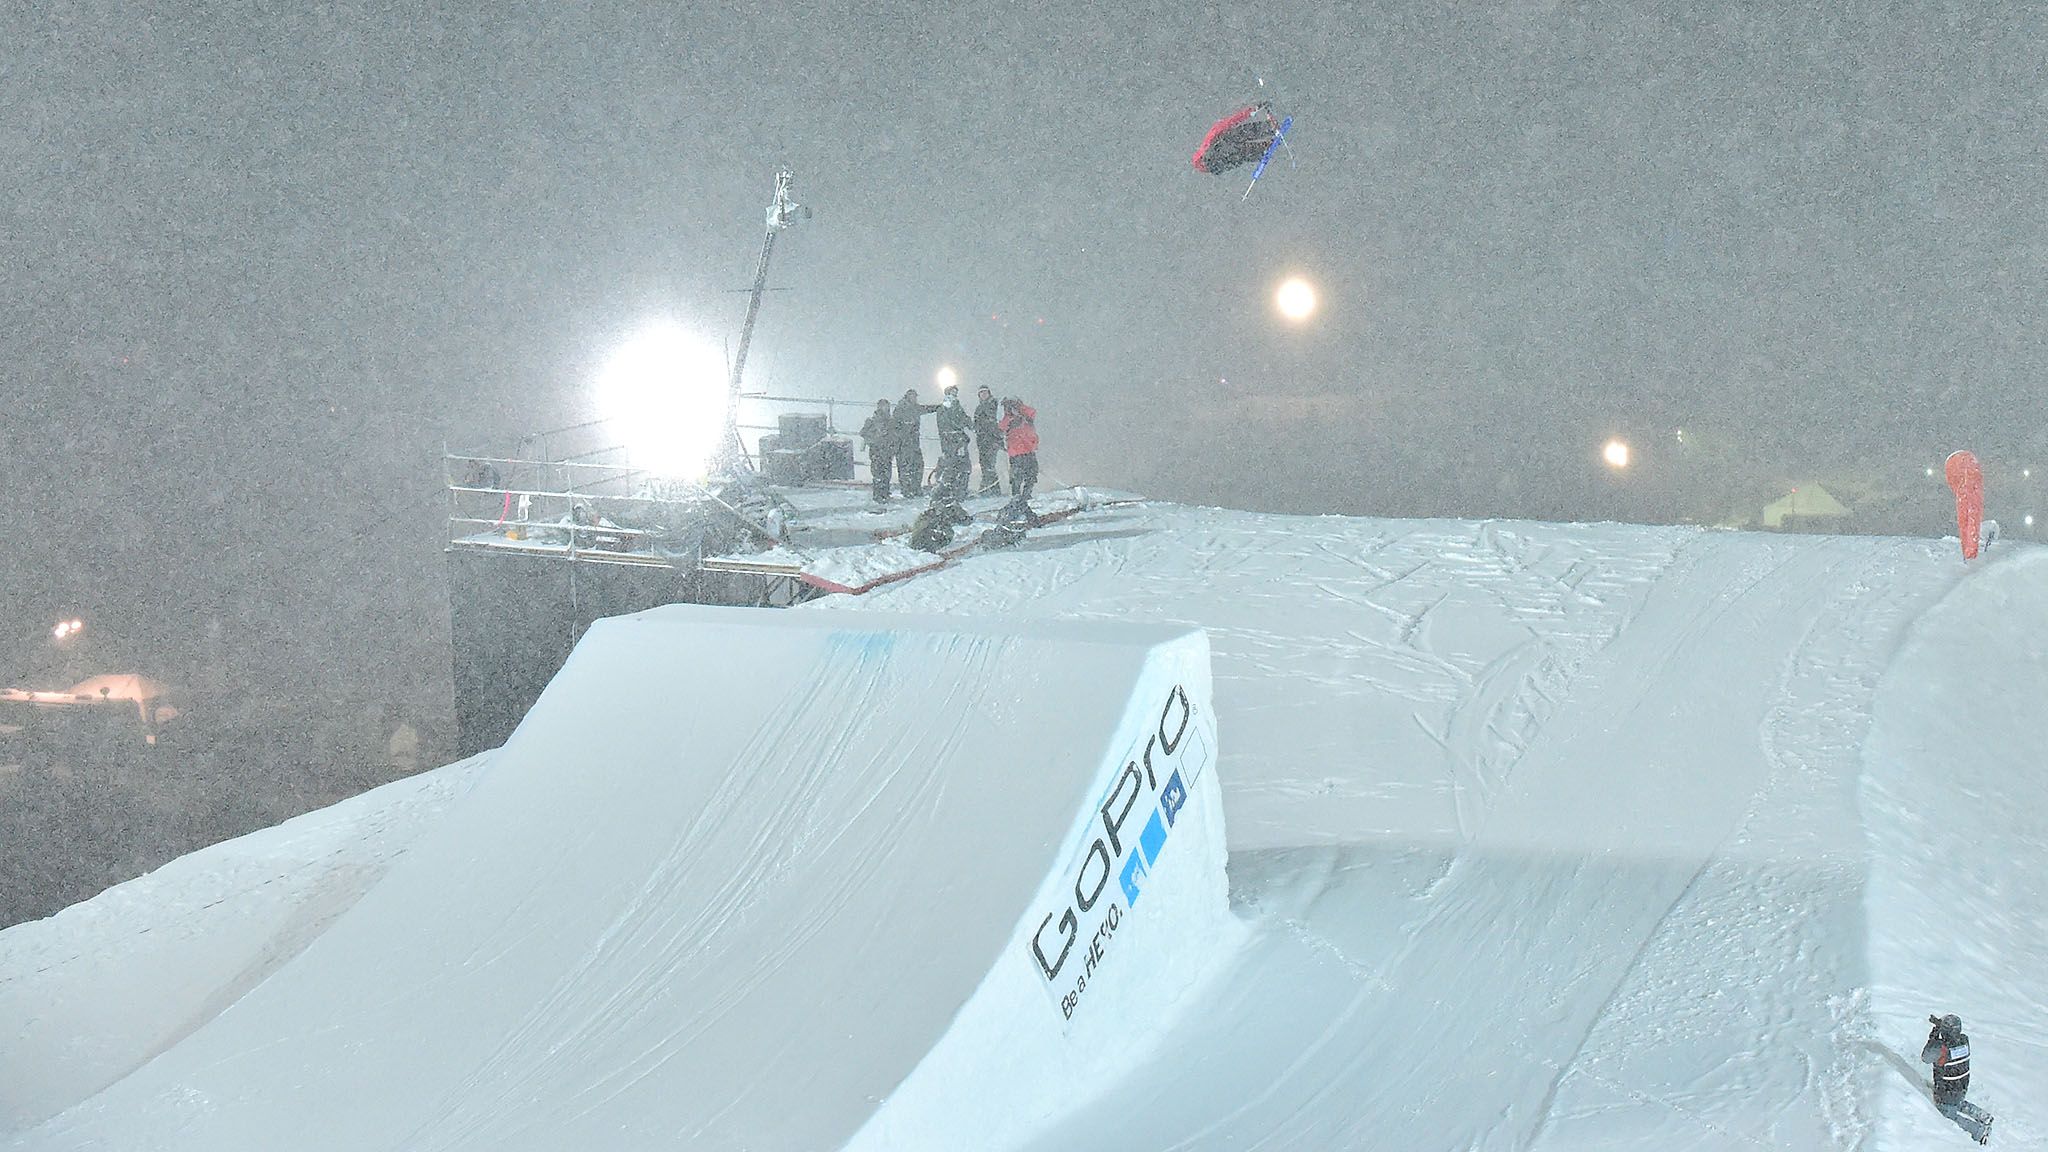 Men's Ski Big Air: Bobby Brown